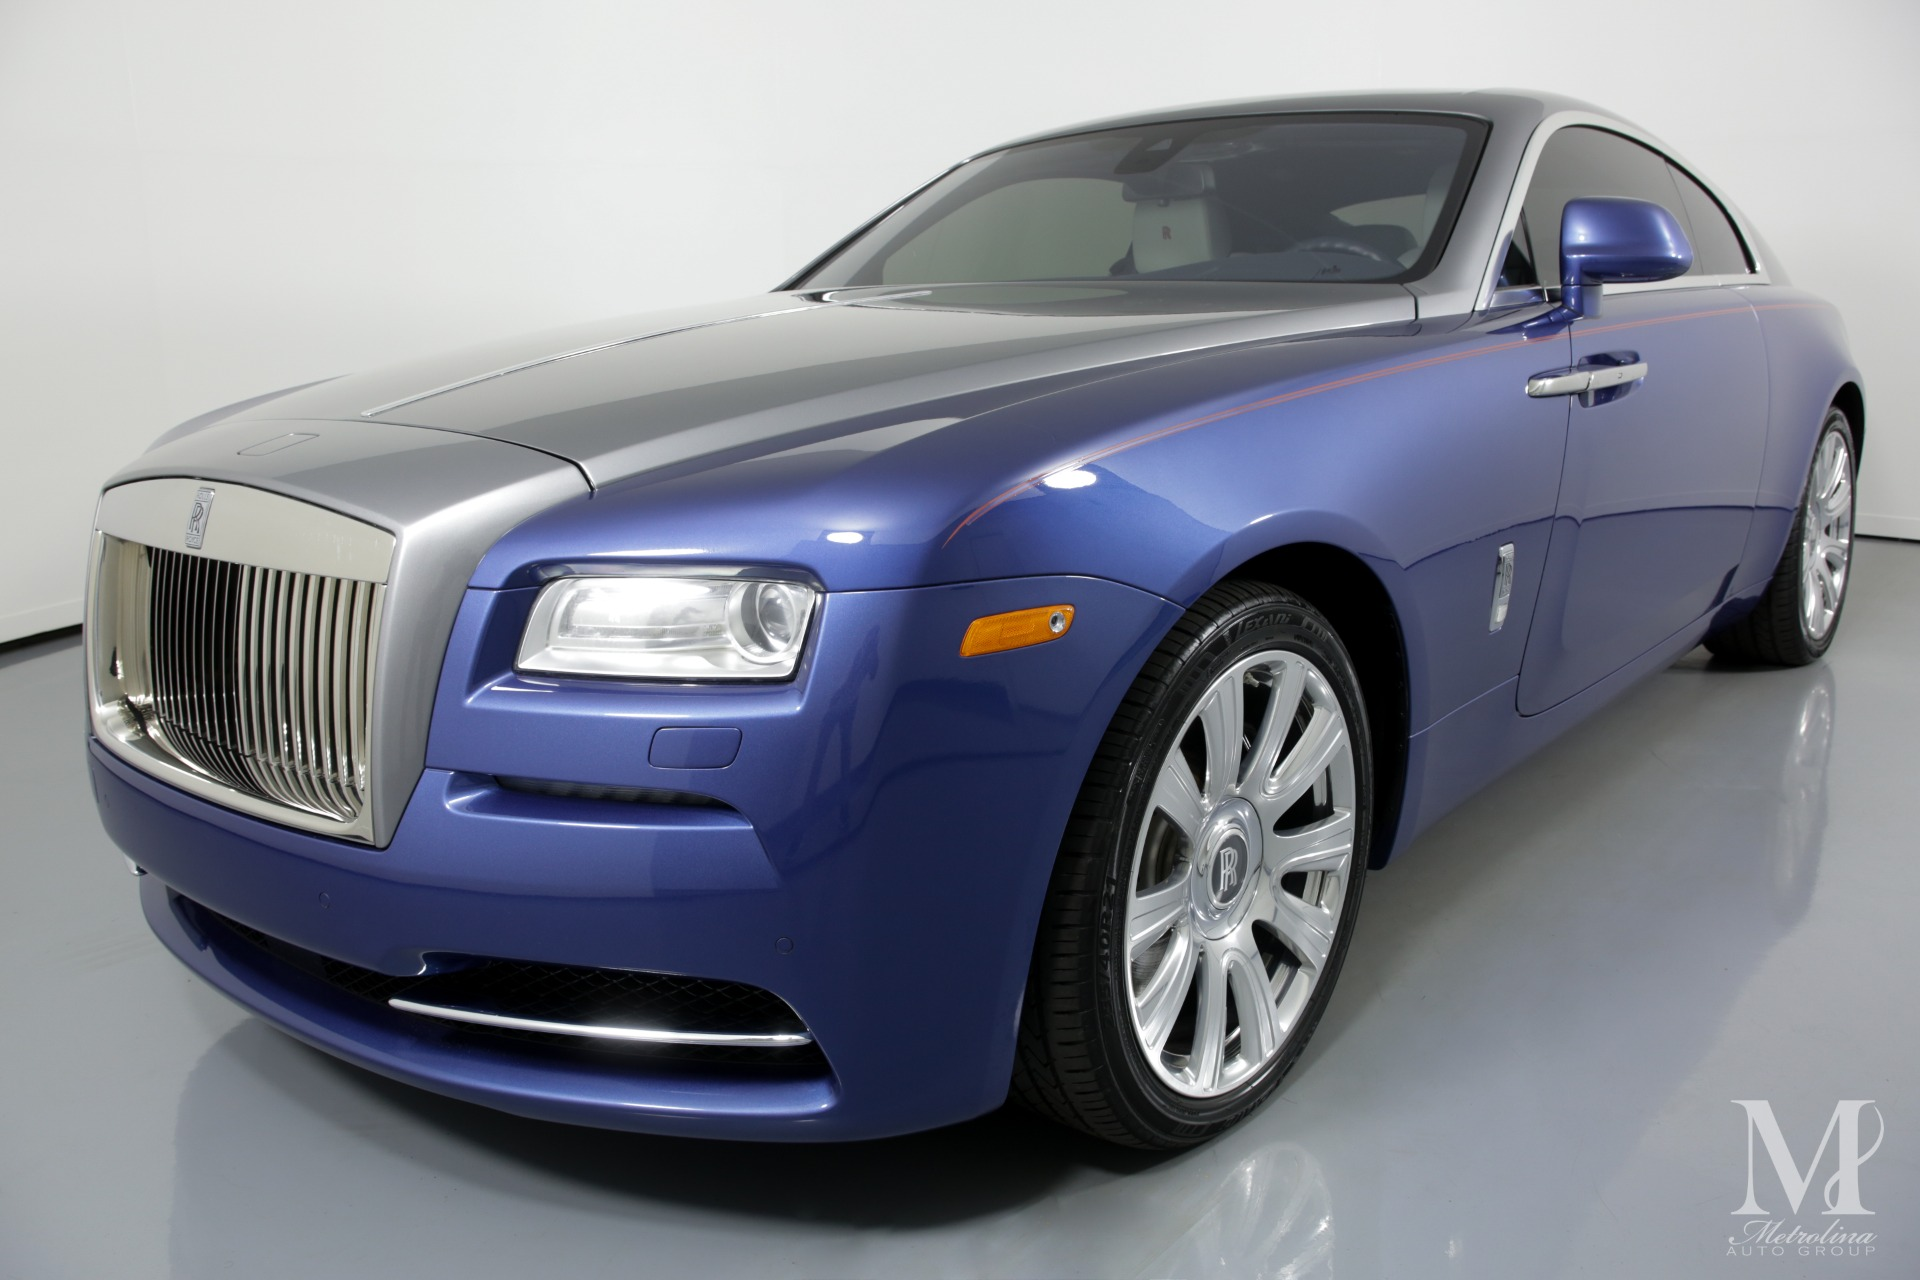 Used 2015 Rolls-Royce Wraith Base 2dr Coupe for sale Sold at Metrolina Auto Group in Charlotte NC 28217 - 4